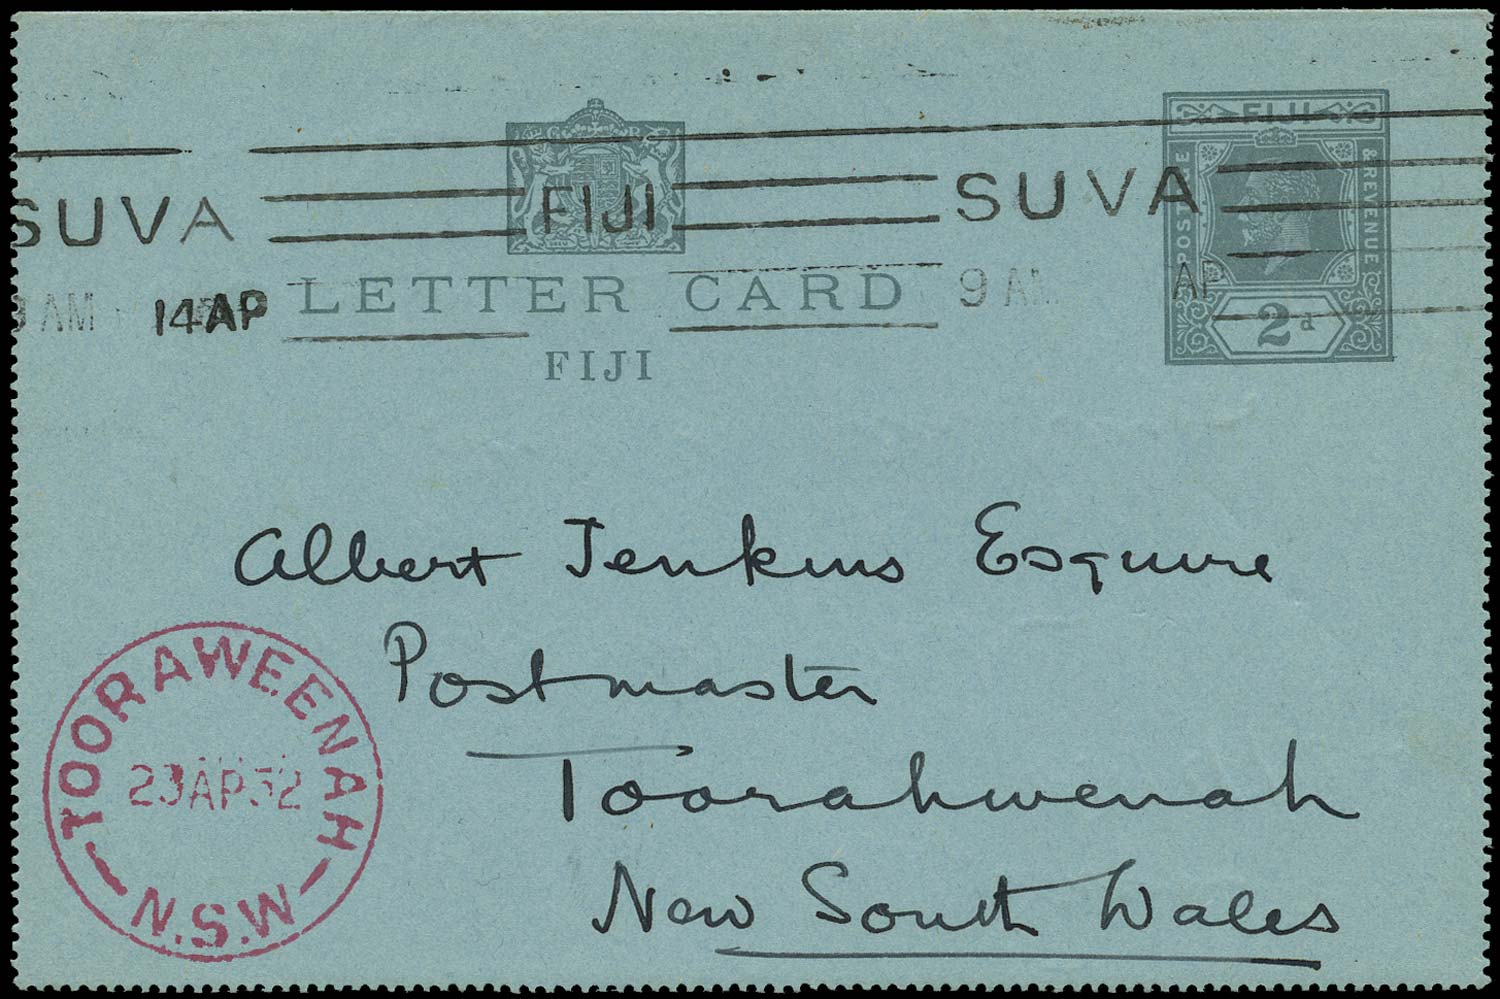 FIJI 1932 Cover KGV 2d grey on blue lettercard to Tooraweenah